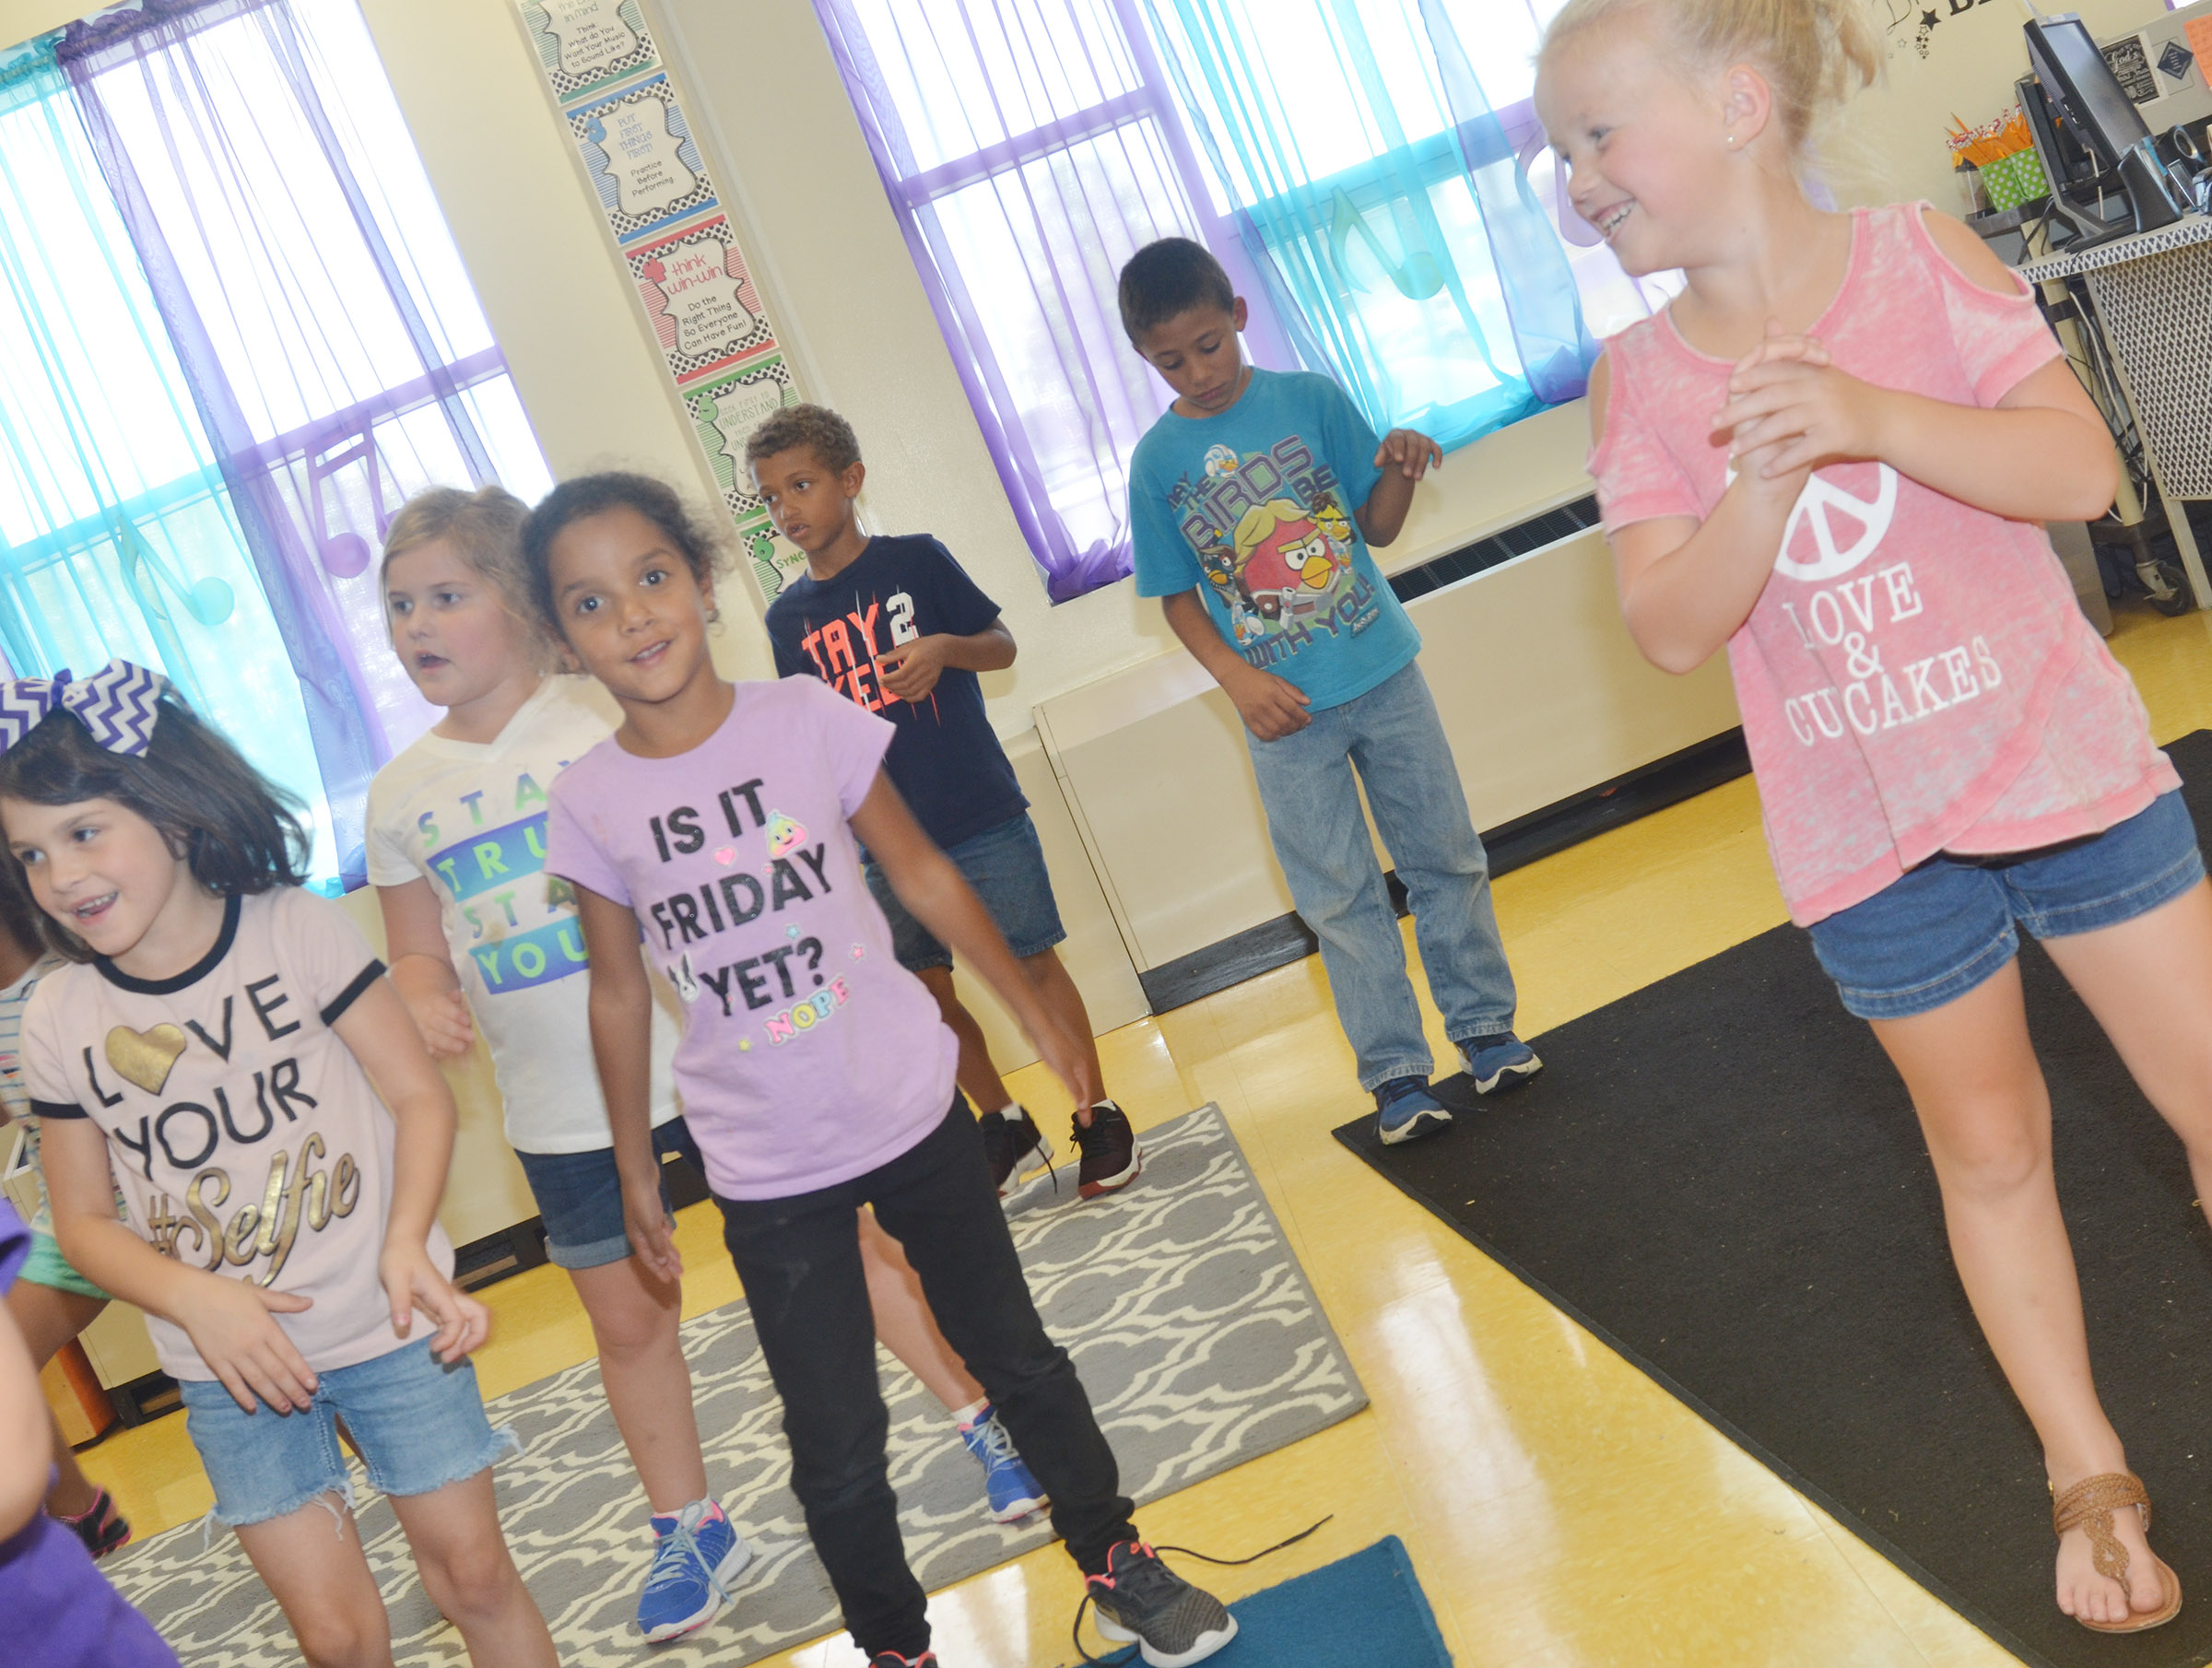 CES first-graders, from left, Phoebe Ritchie, Aubreigh Knifley, Kylei Thompson, Tyce Owens, Elijah Williams and Lillie Judd dance to the beat.